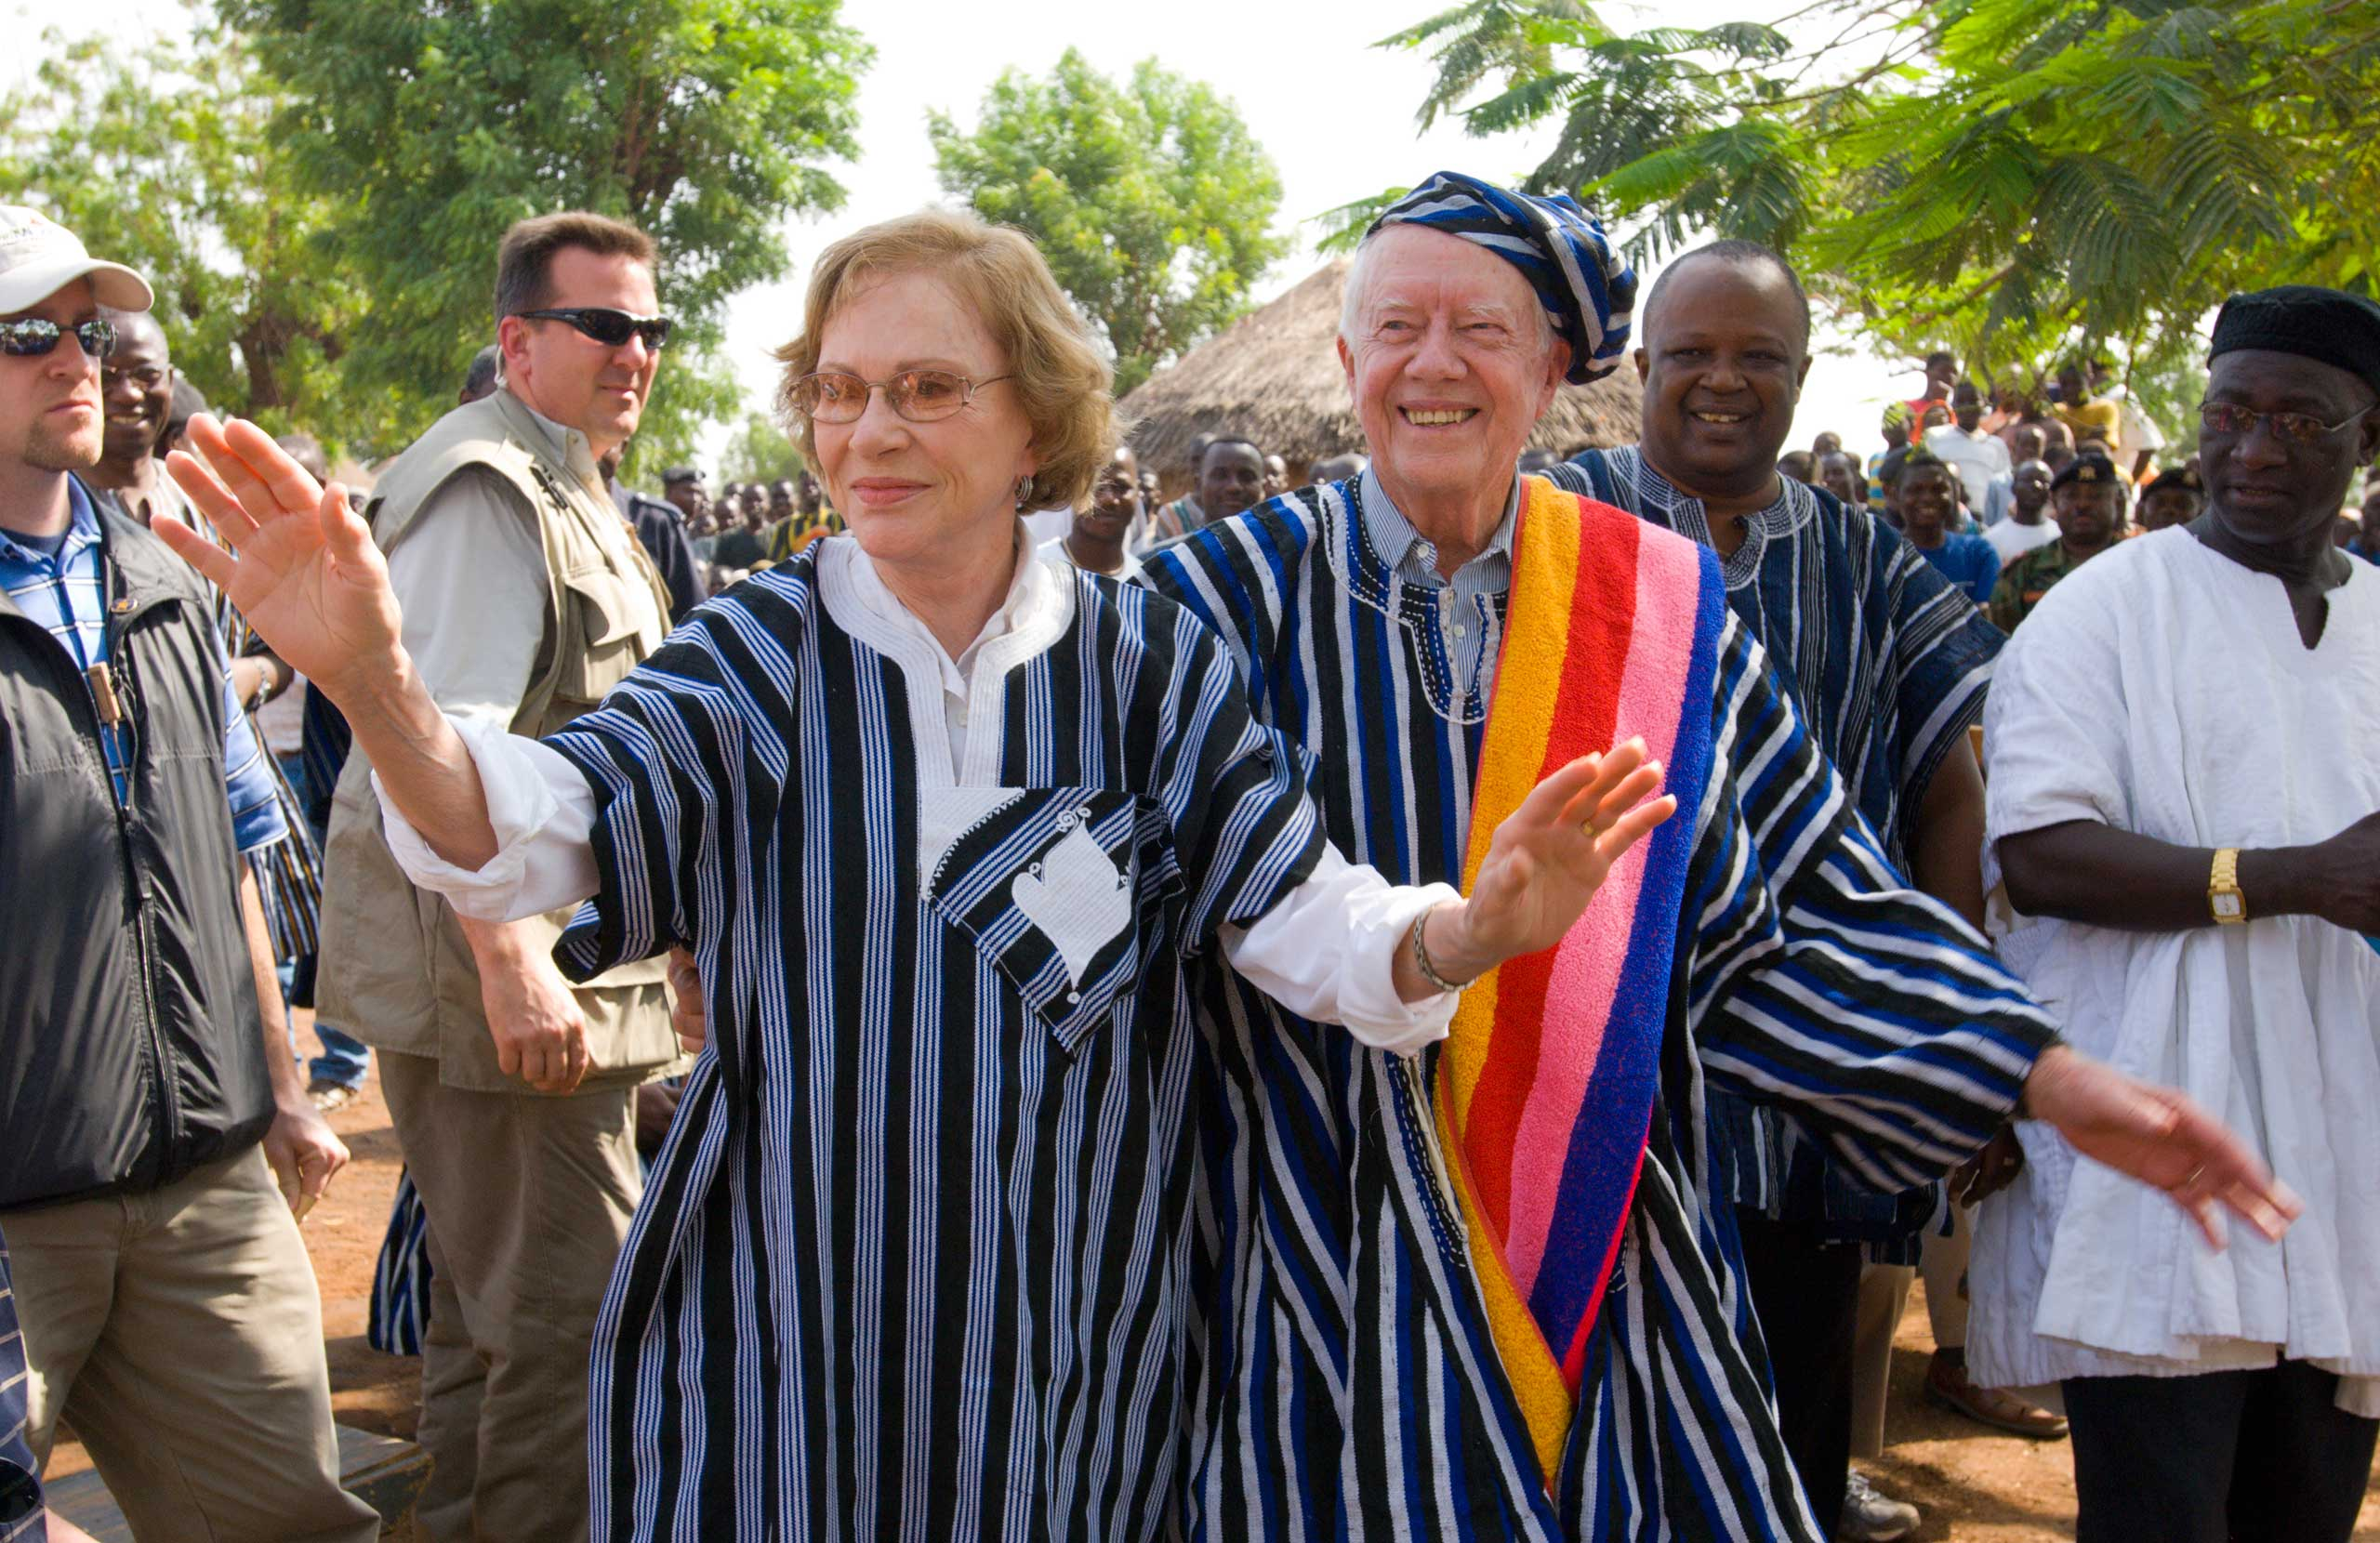 President Jimmy Carter and his wife Rosalynn are honored by the Dagumba people with a gift of traditional attire in Tingoli, Northern Ghana in 2007.